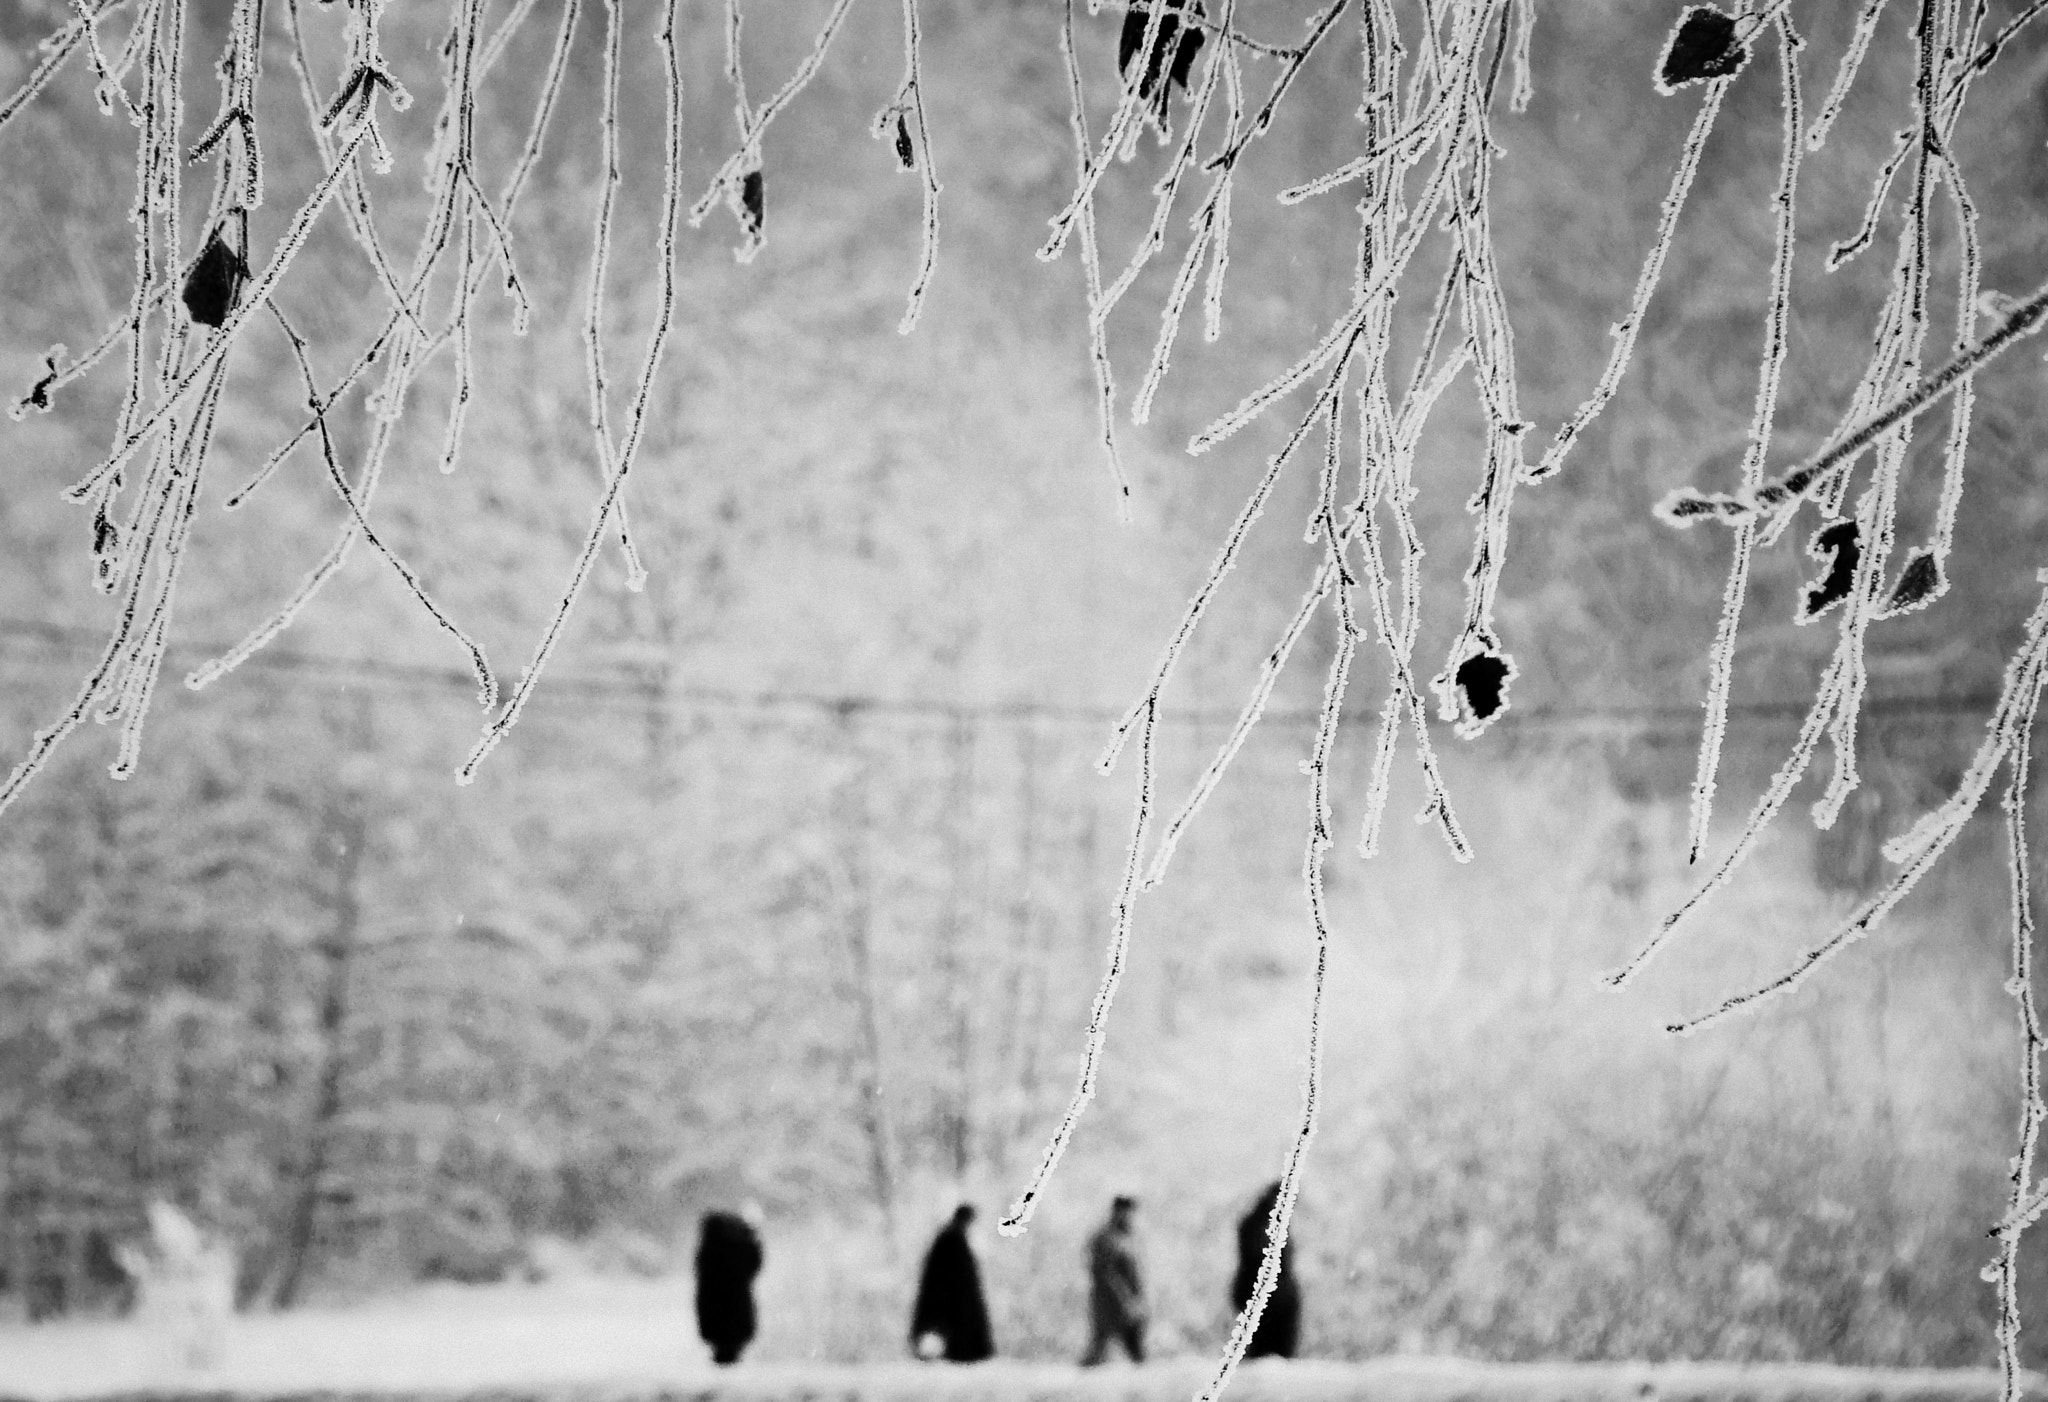 Photograph Figures In The Distance  by Mojca Savicki on 500px